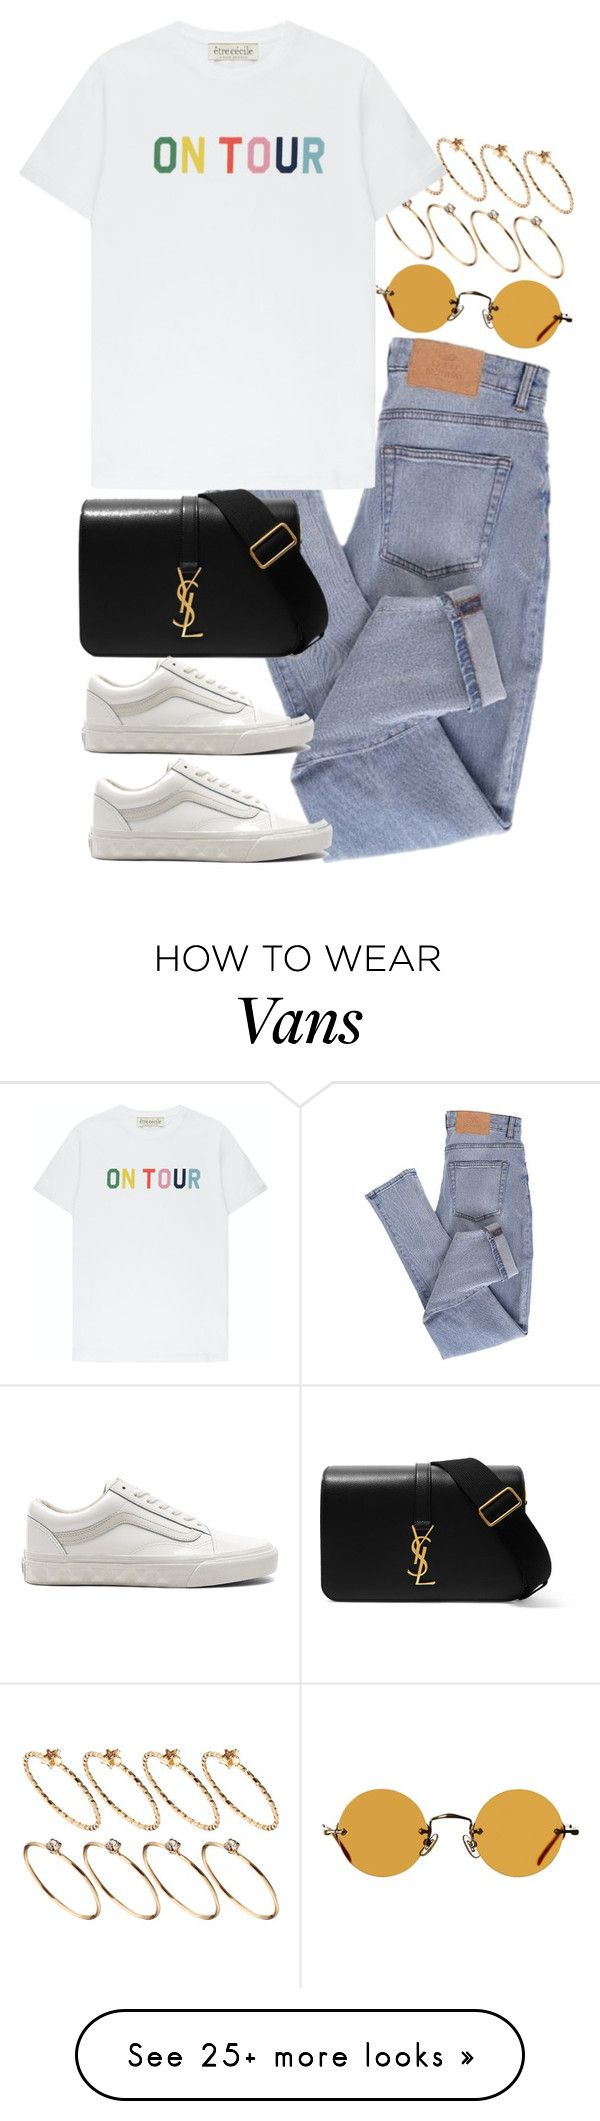 """Untitled #11583"" by nikka-phillips on Polyvore featuring ASOS, Cheap Monday, Être Cécile, Vans, Yves Saint Laurent and Hakusan"